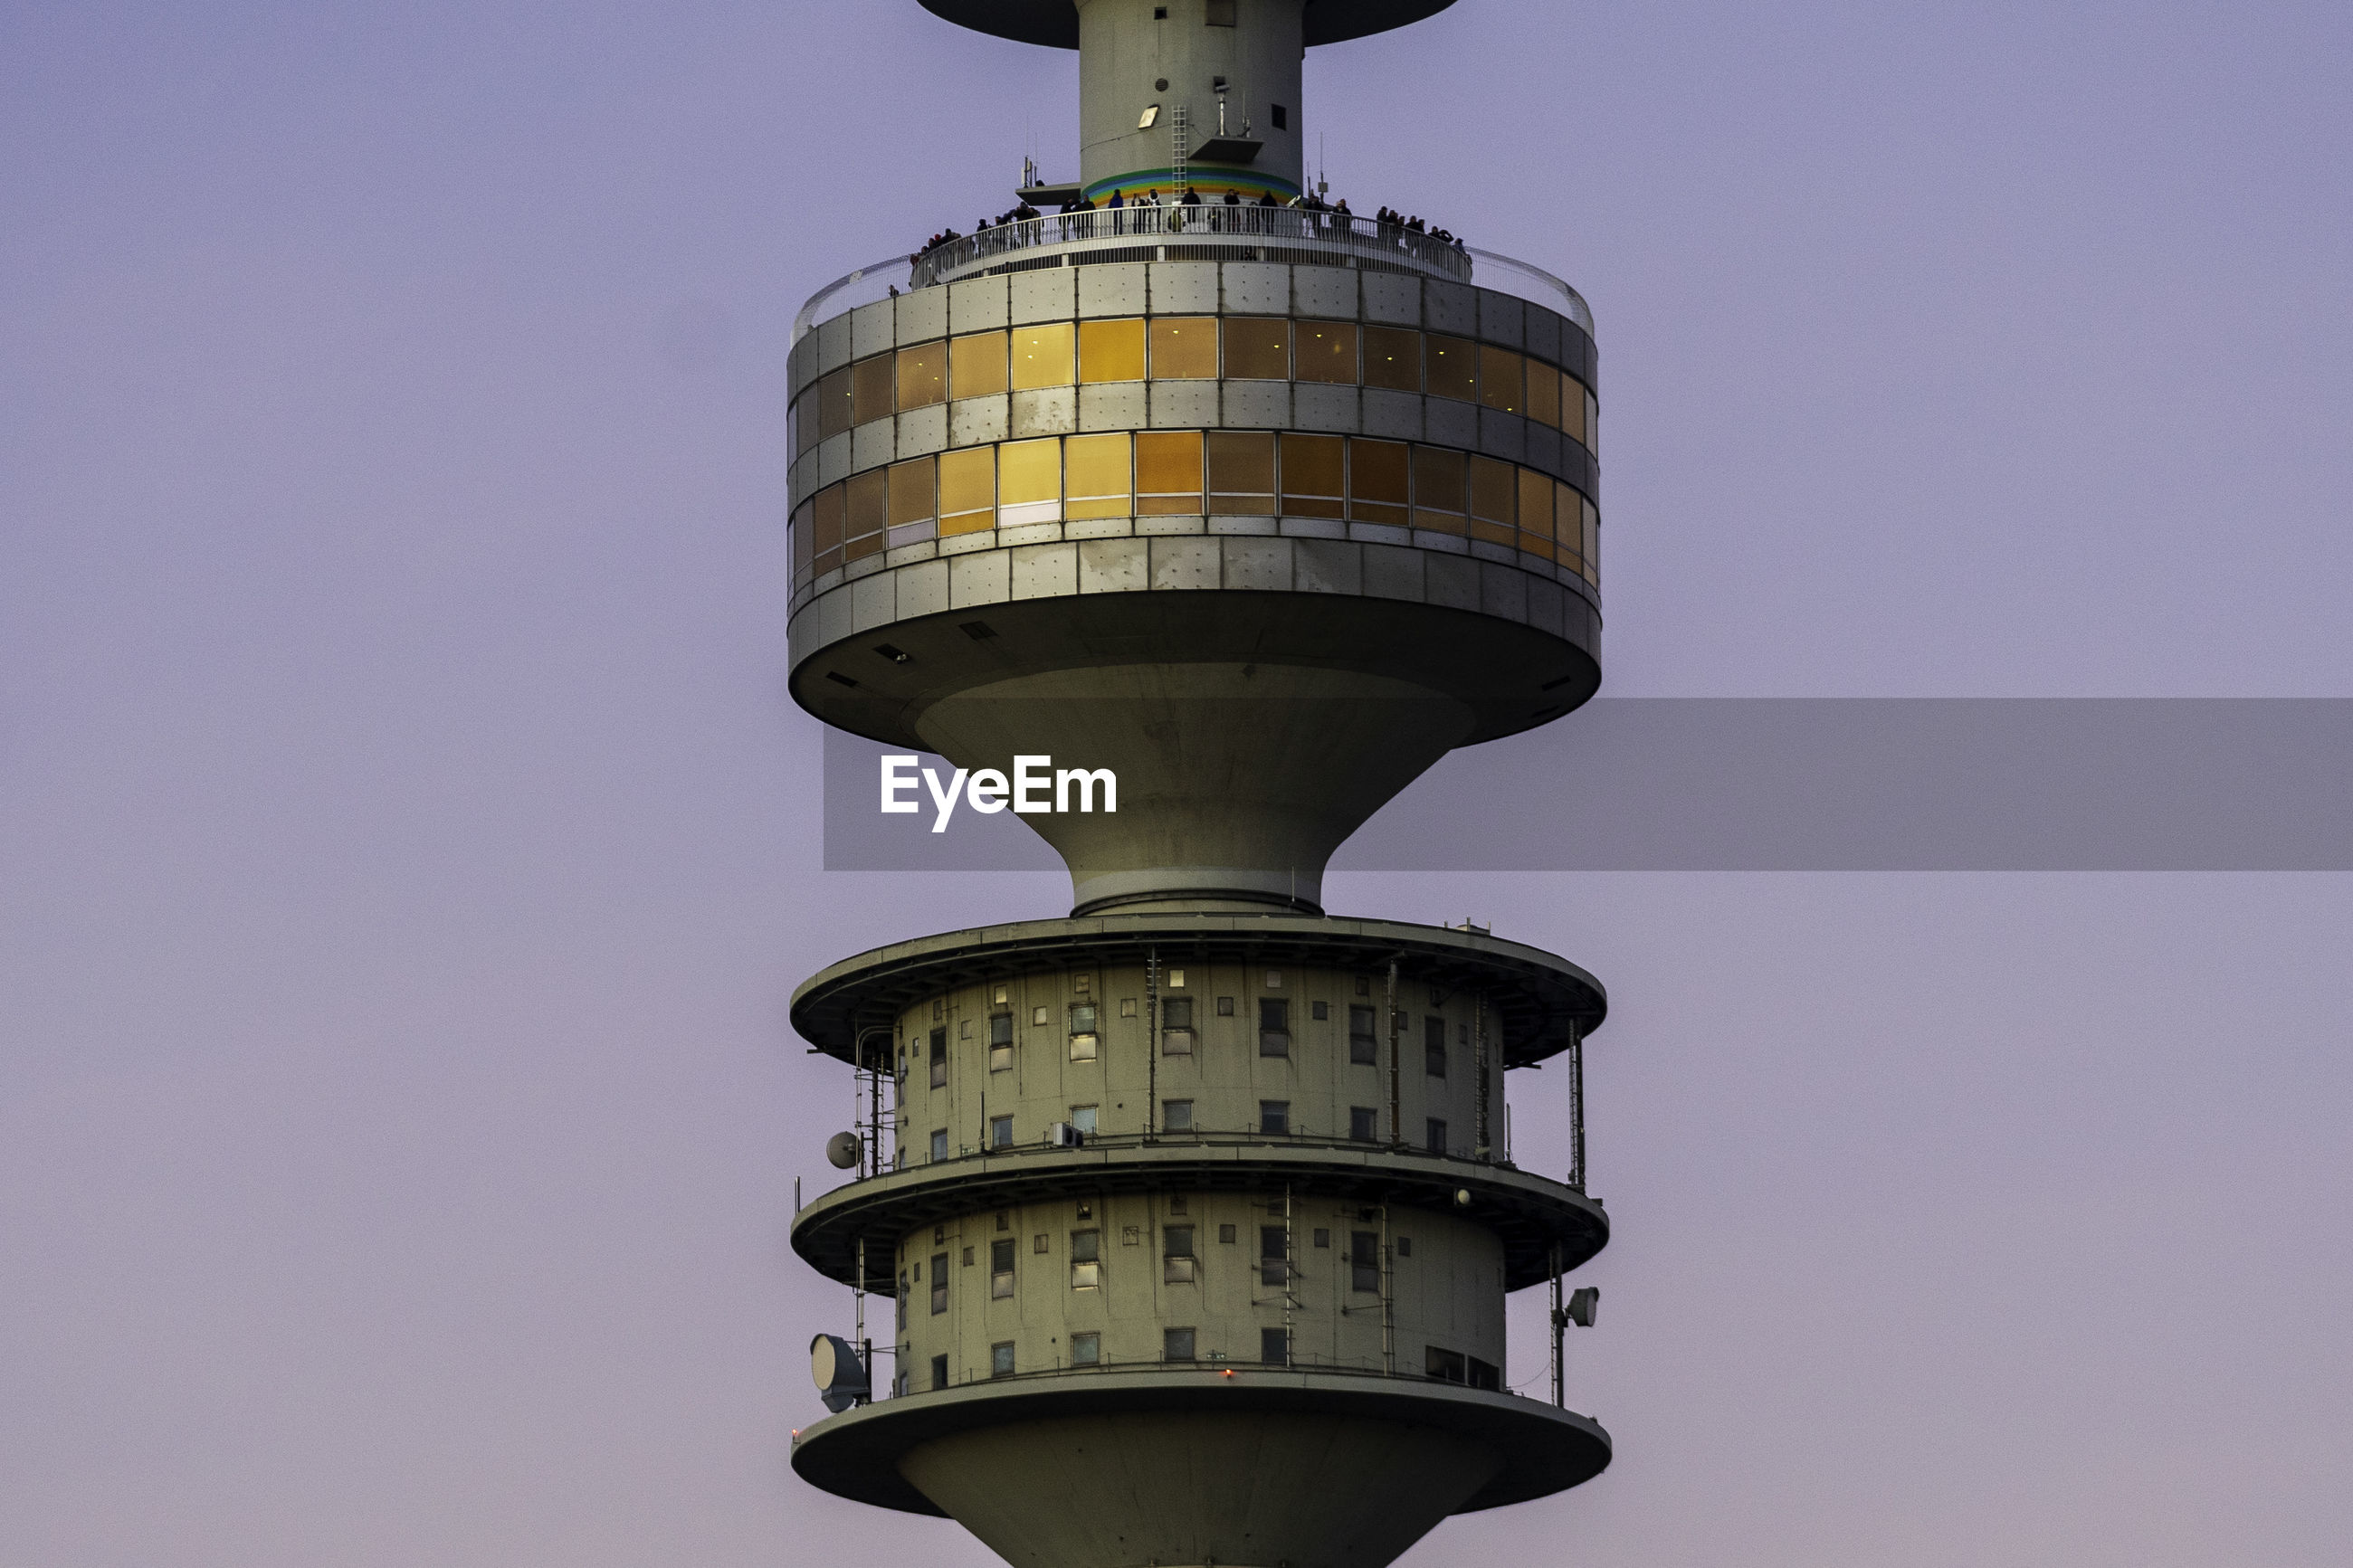 LOW ANGLE VIEW OF TOWER AGAINST SKY IN CITY